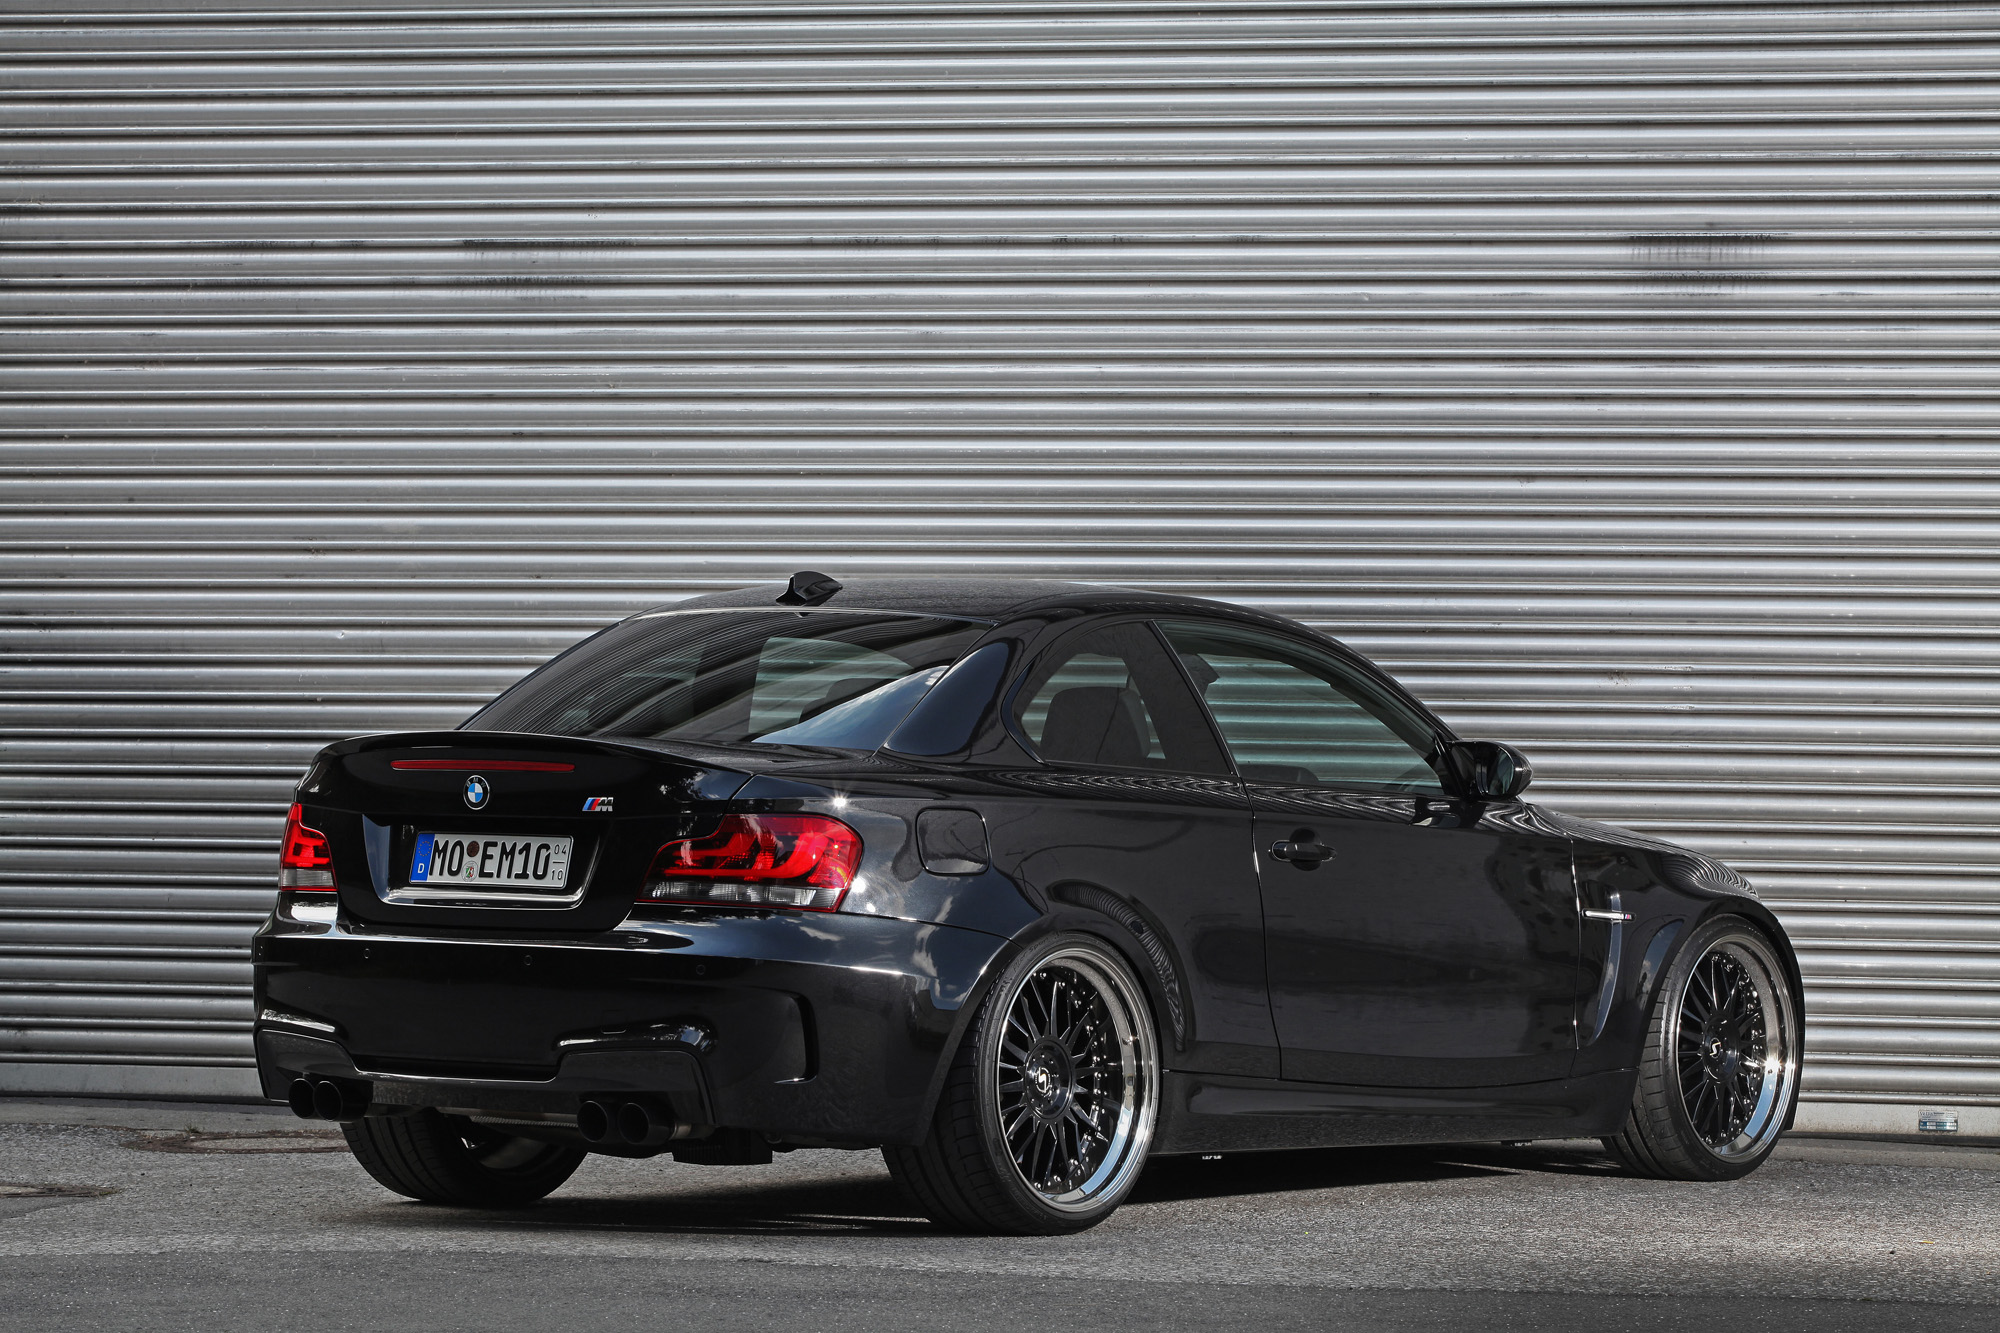 bmw 1er m e82 tuning rauf auf 440 ps durch ok chiptuning. Black Bedroom Furniture Sets. Home Design Ideas